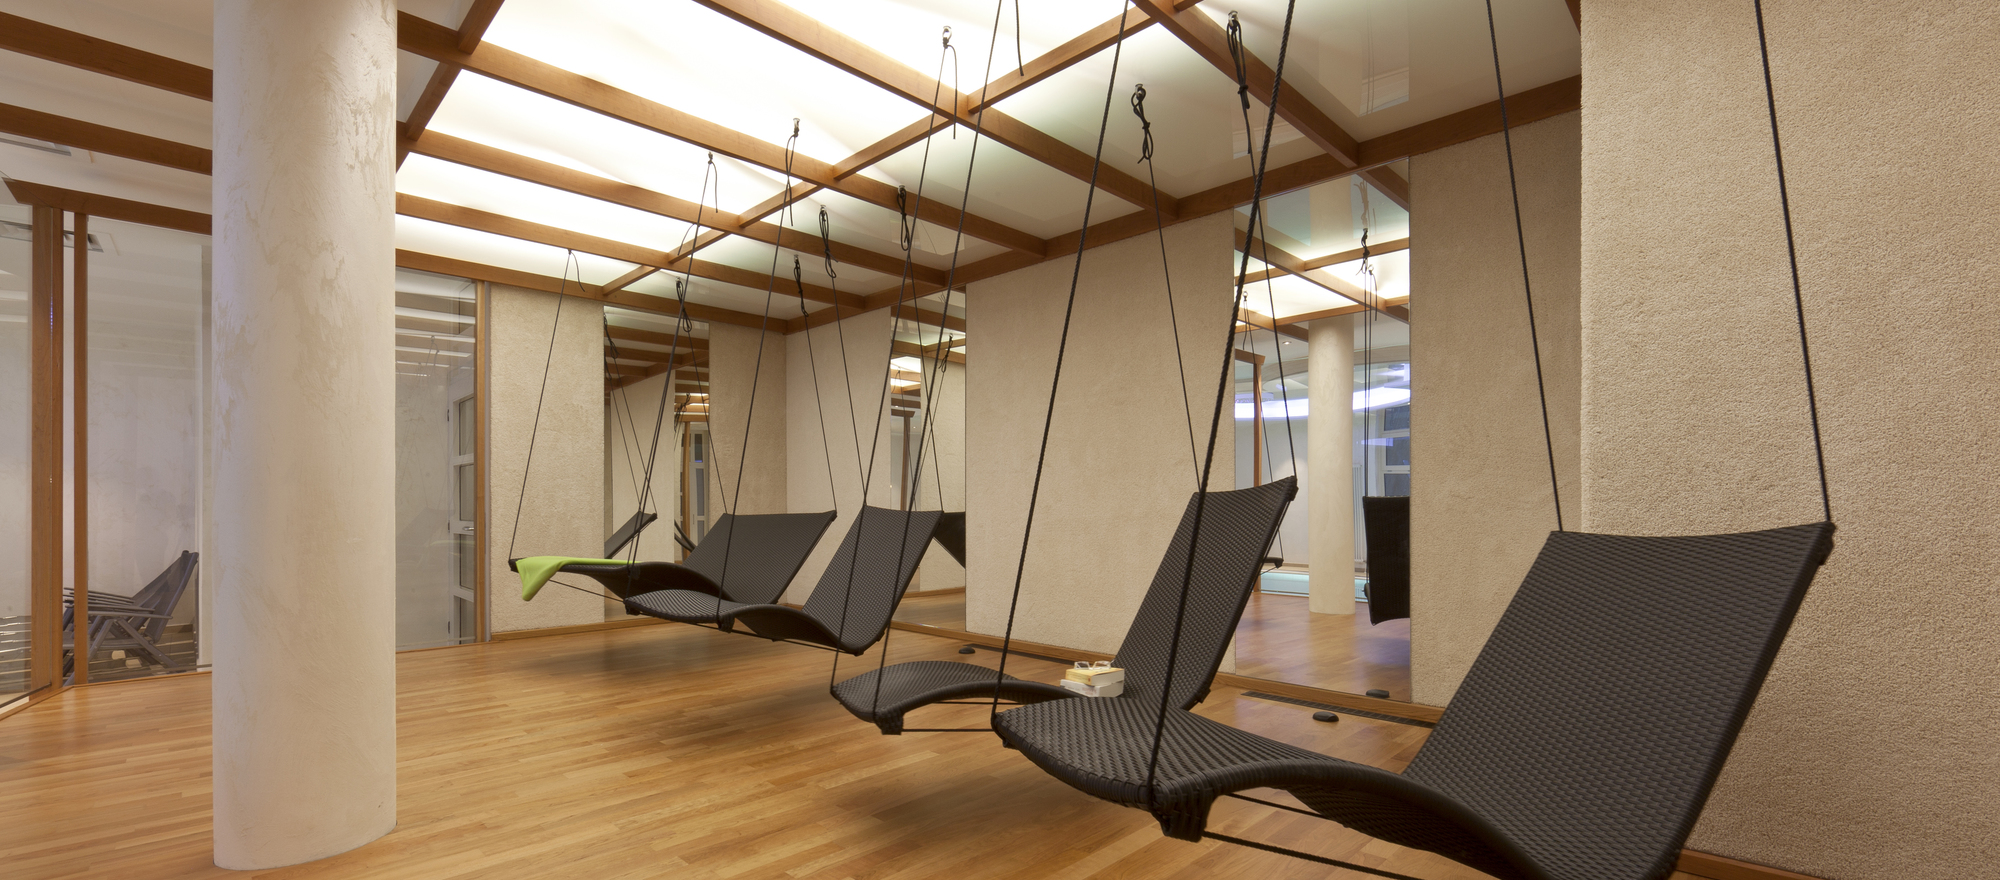 Relaxing in a swinging relaxation lounger at the 4-star hotel Ringhotel Am Stadtpark in Luenen